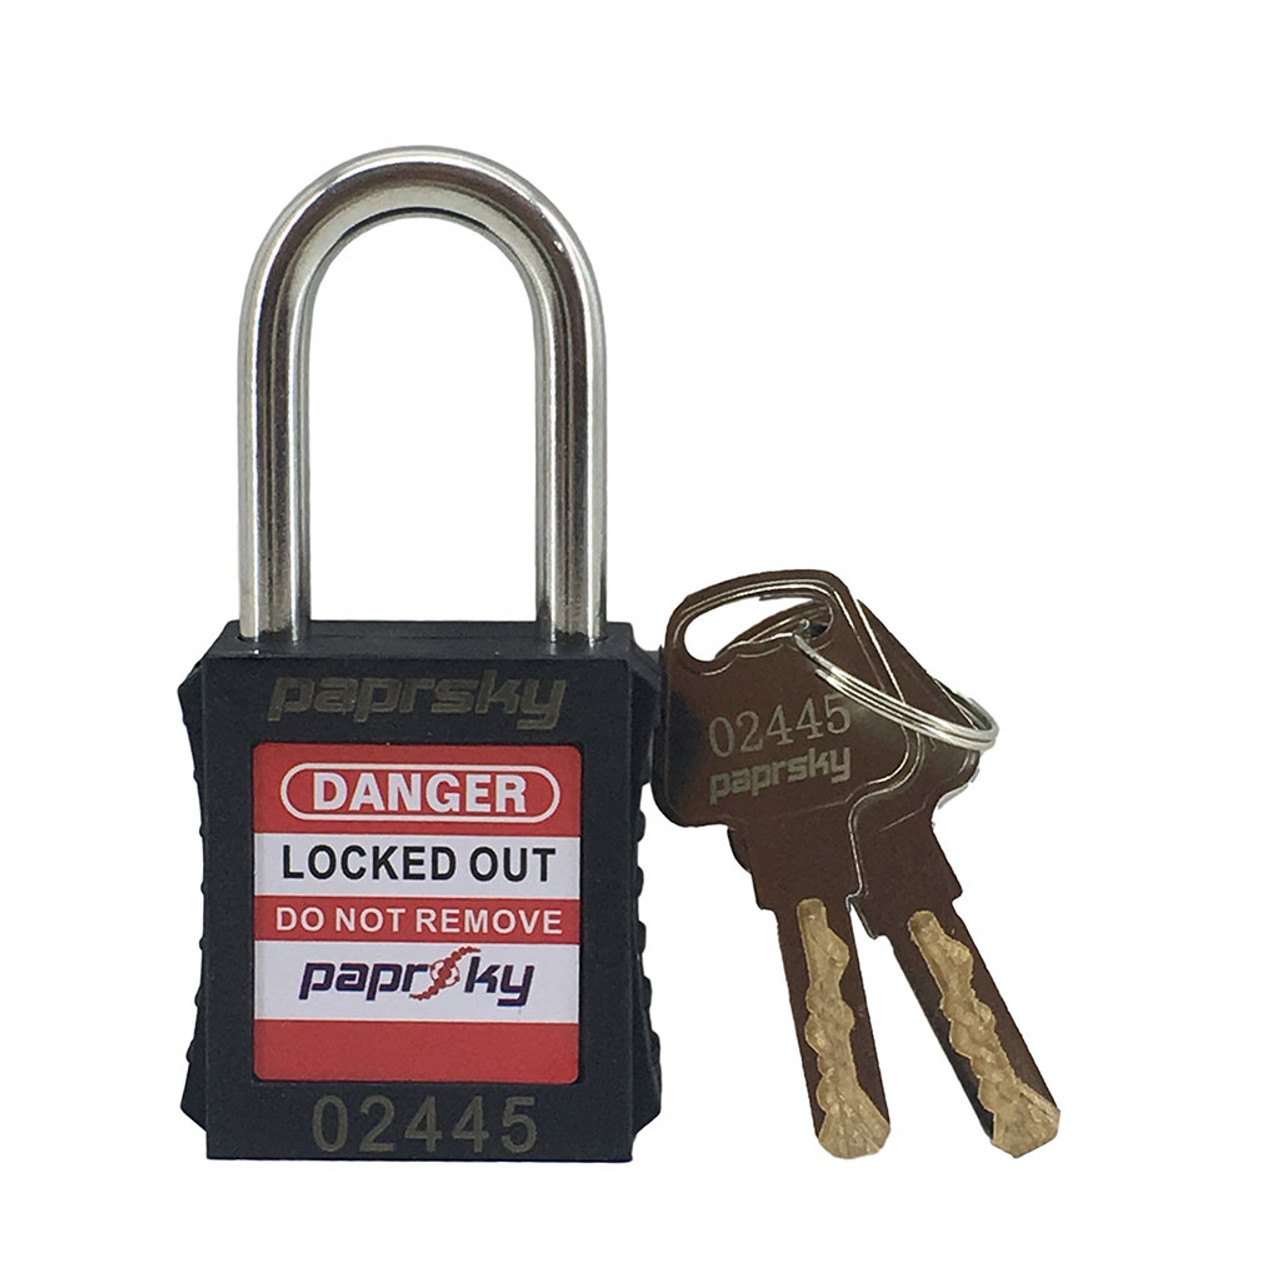 Lockout Padlock Black locks PS-LOTO-PPR-38